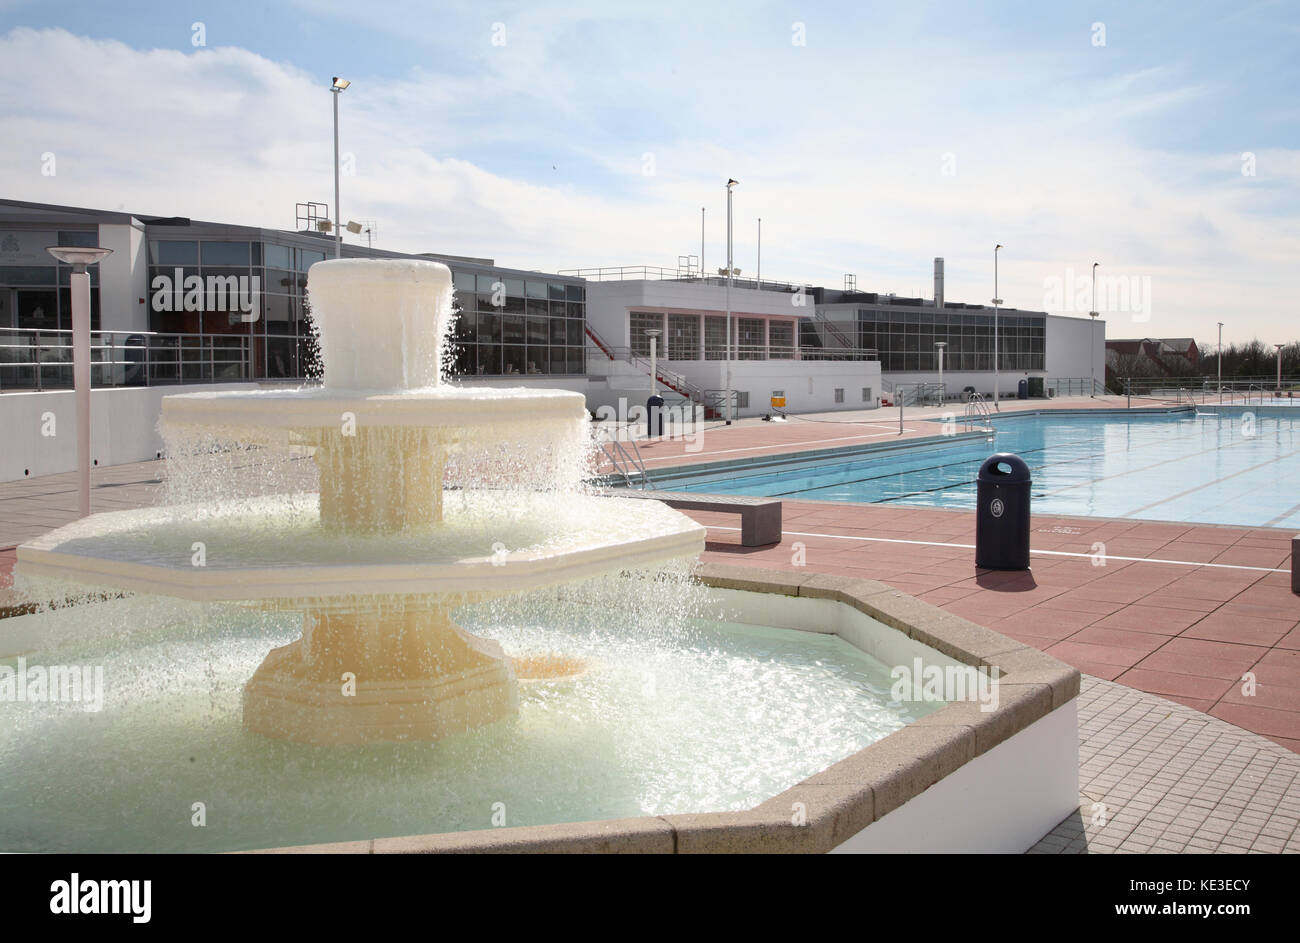 Fountain at the newly refurbished outdoor swimming pool at Uxbridge Lido and sports centre west of London, UK. - Stock Image